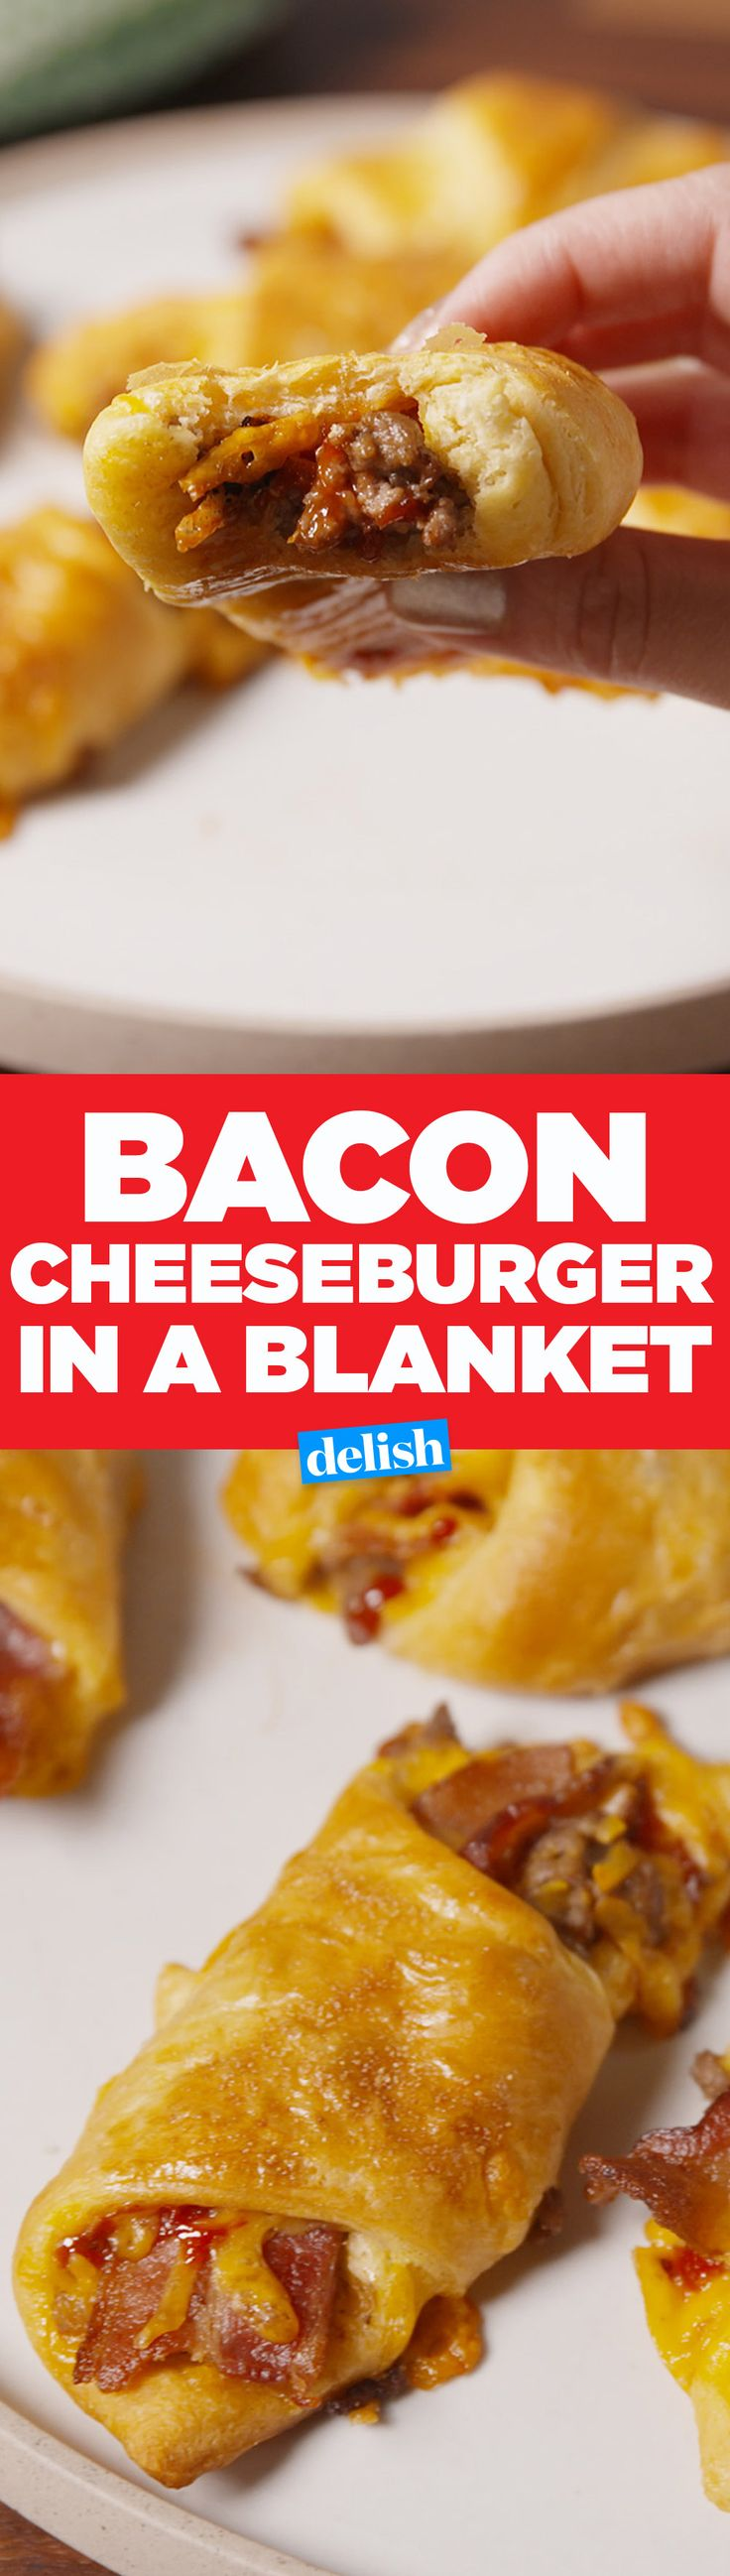 These Bacon Cheeseburgers In A Blanket will be gone before kickoff. Get the recipe from Delish.com.